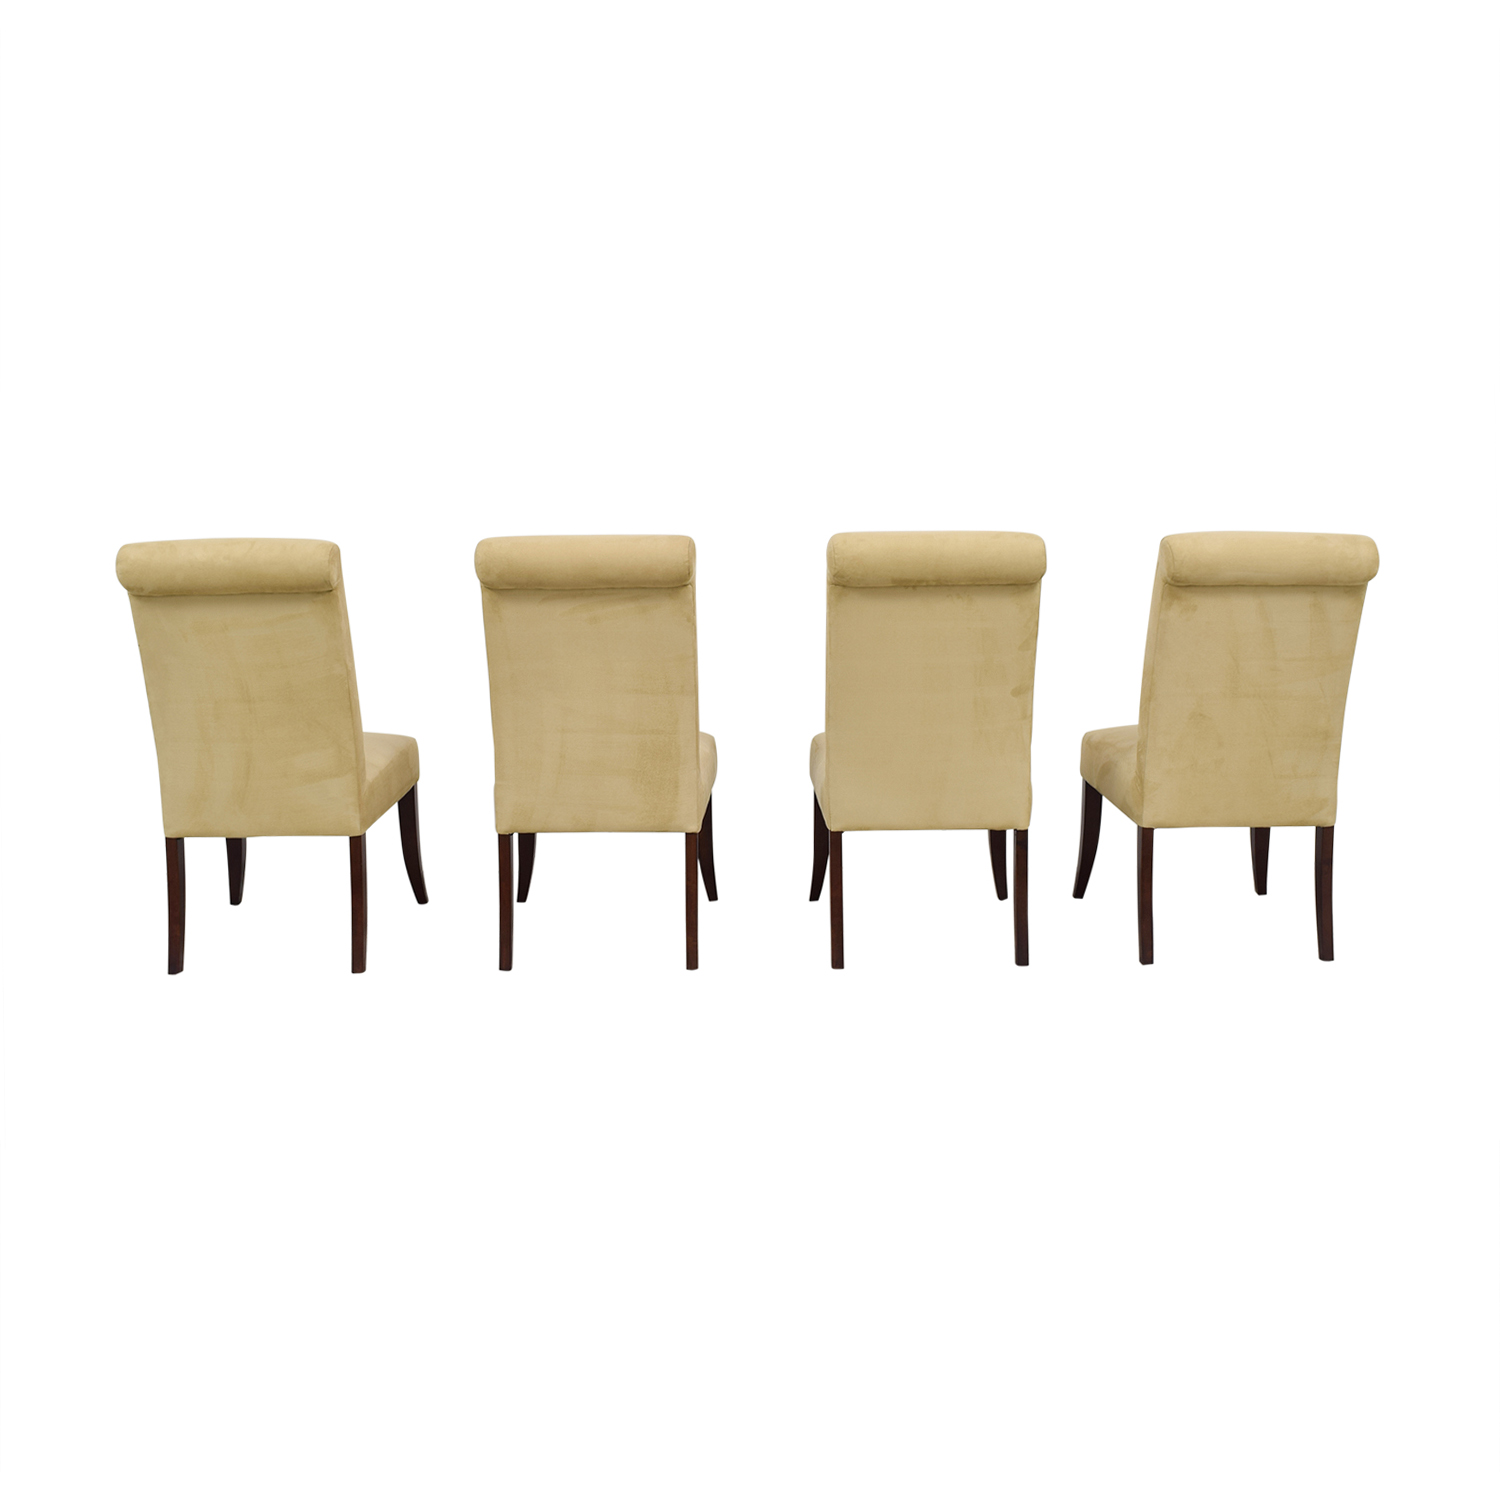 pottery barn windsor chair the revolving meaning in hindi dining chairs used for sale